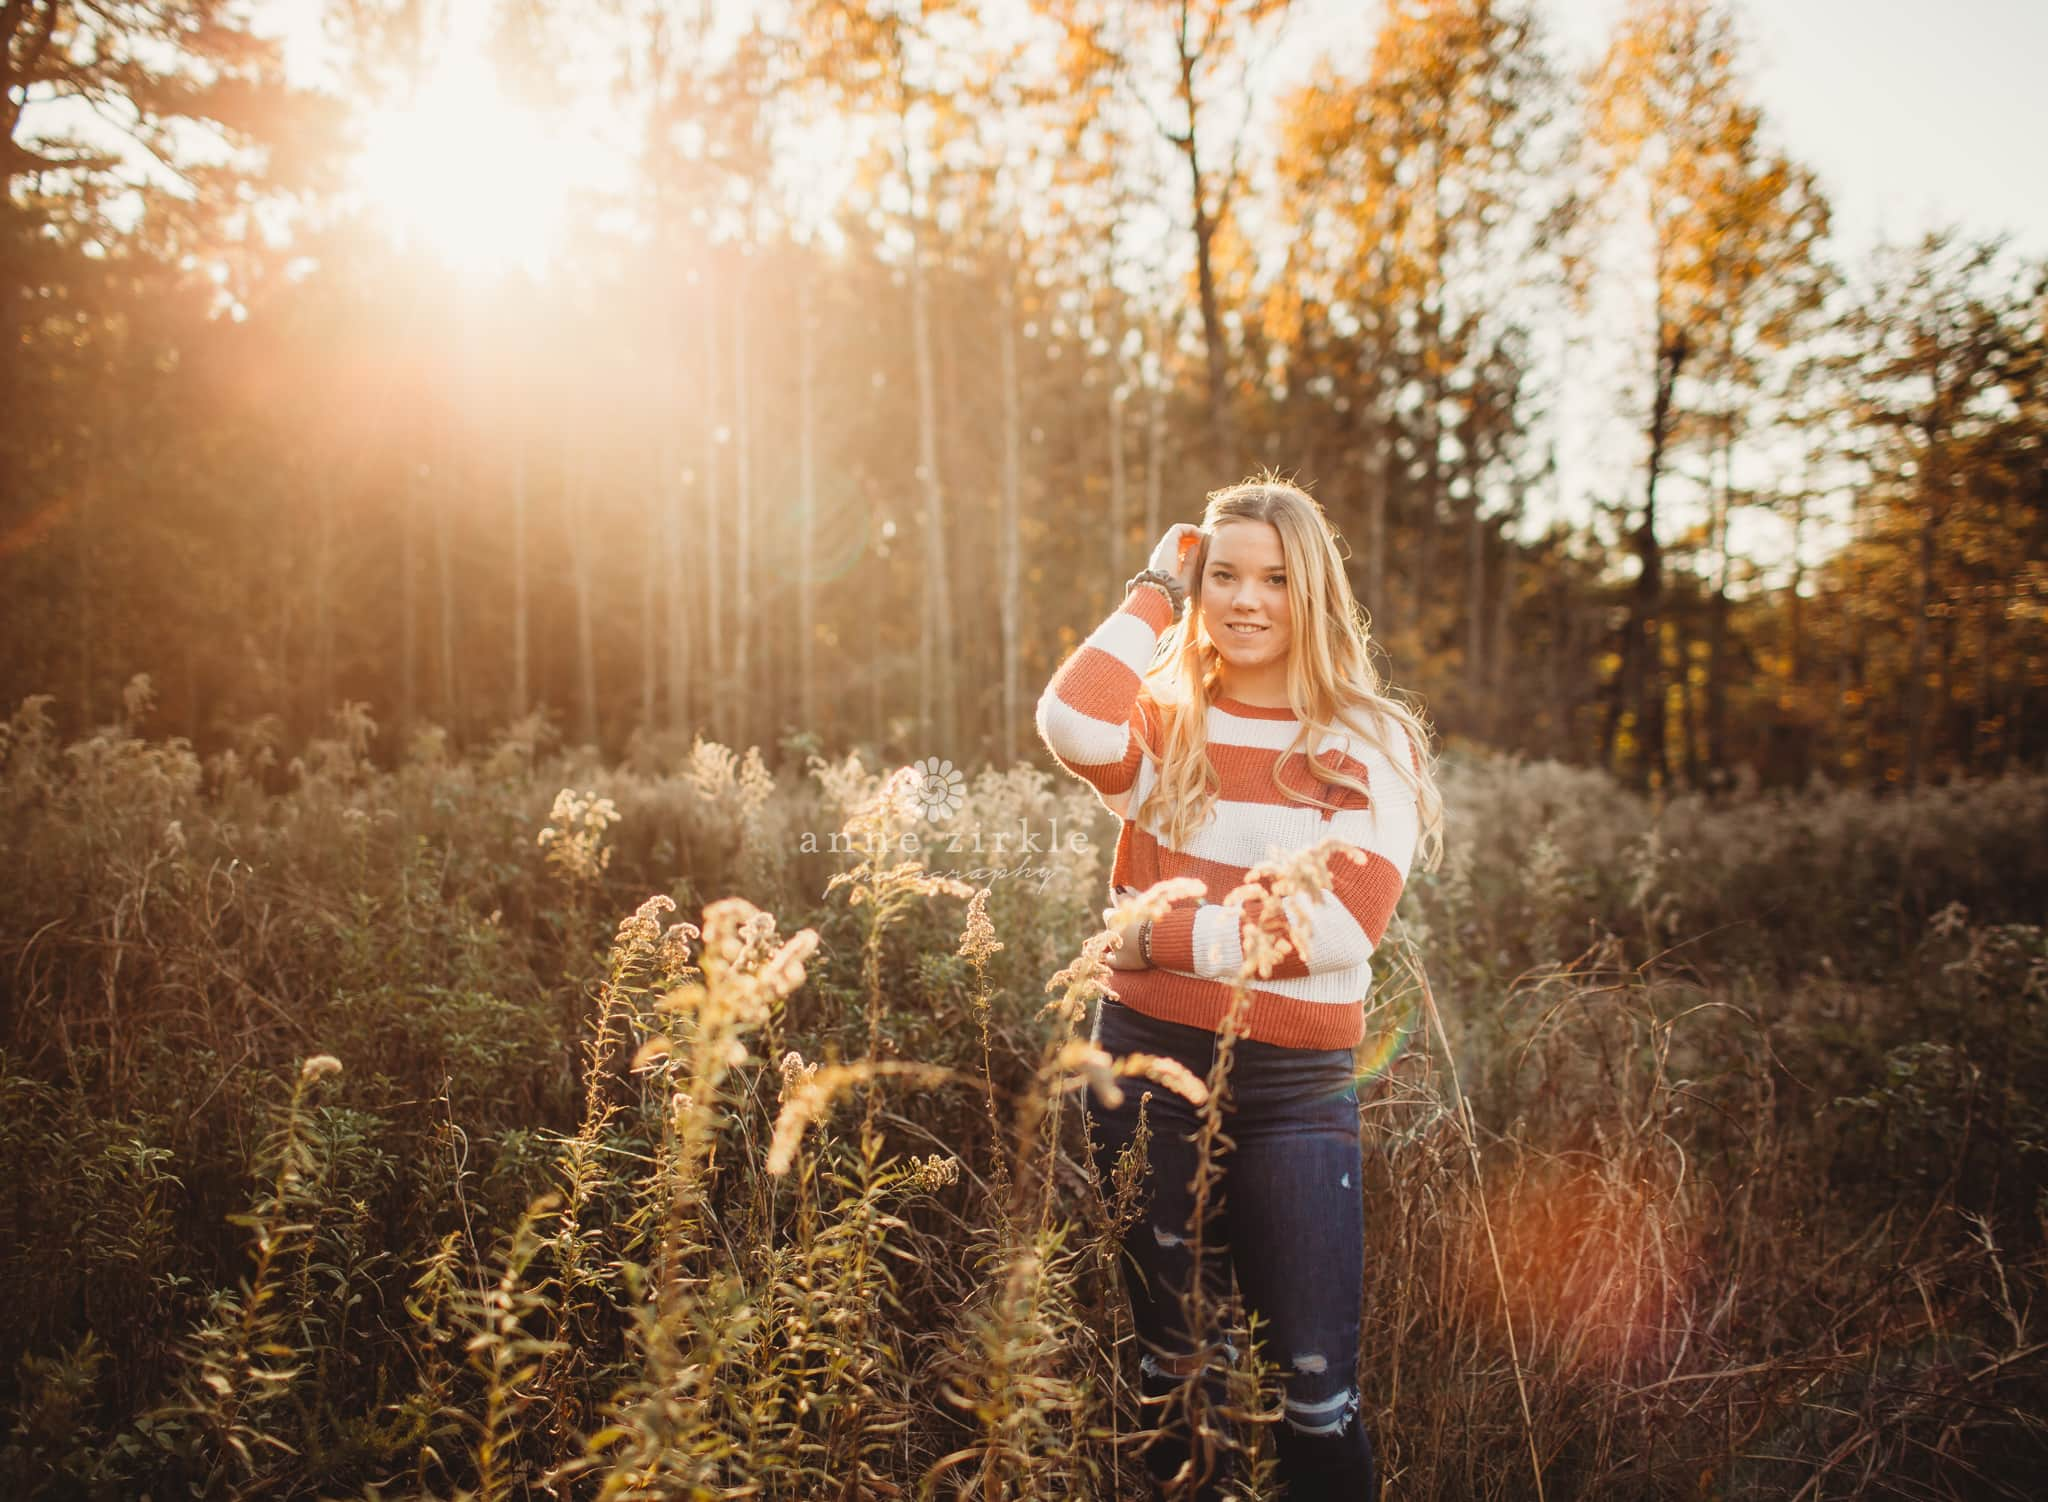 senior girl in fall field with sunflare #mooresville #northcarolina #davidson #lakenorman #southiredell #pinelakeprep #highschool #highschoolsenior #highschoolseniors #seniors